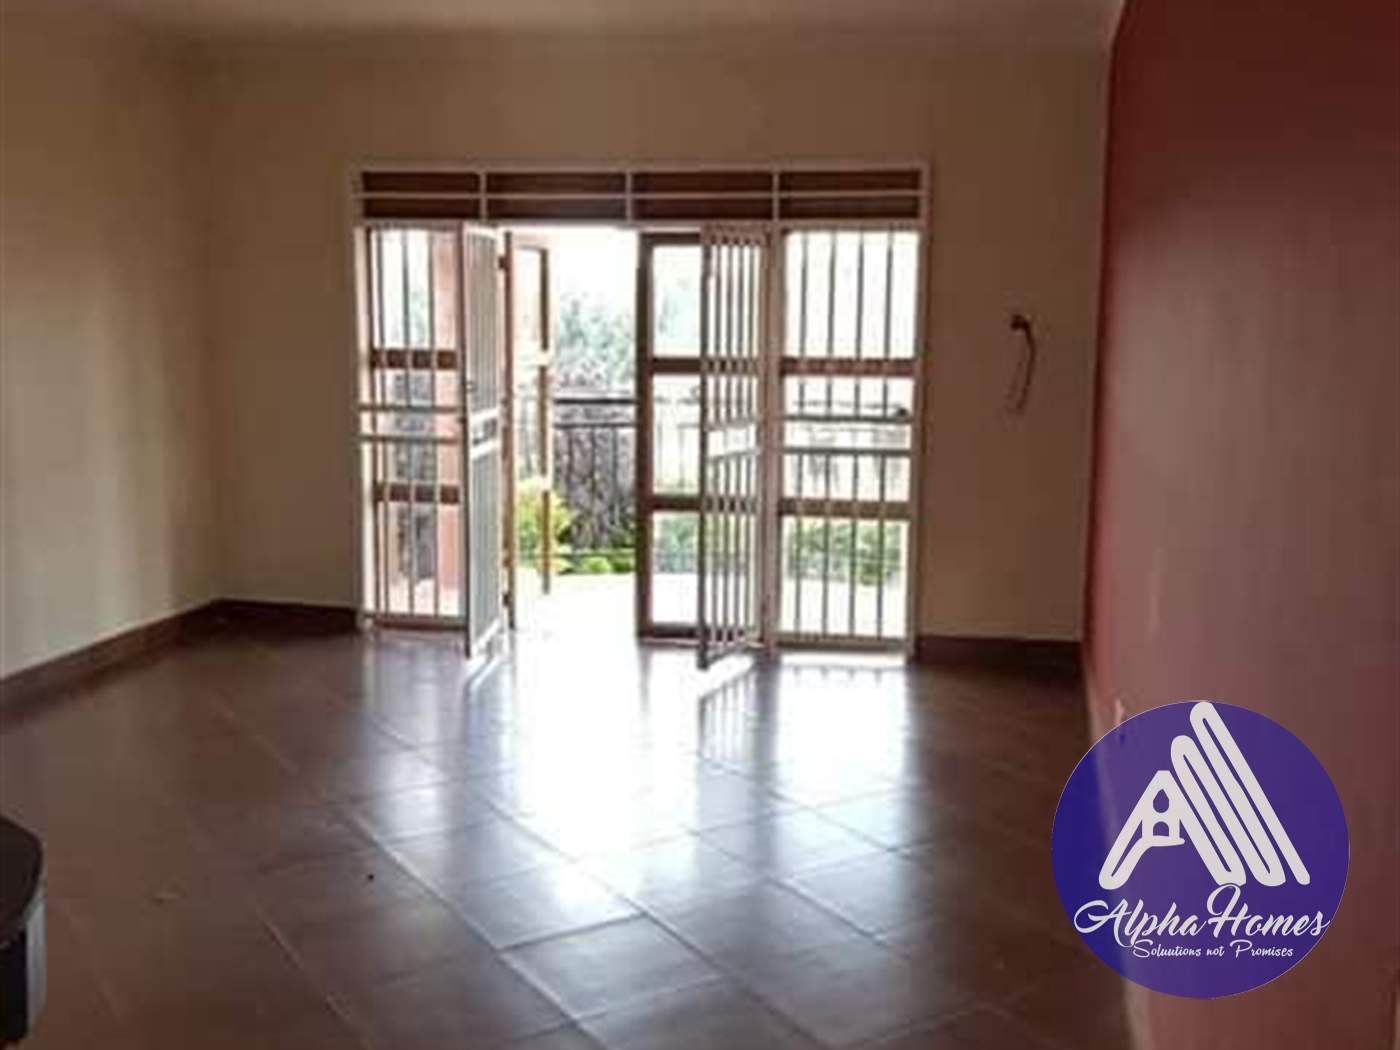 Apartment for rent in Kasangati Wakiso